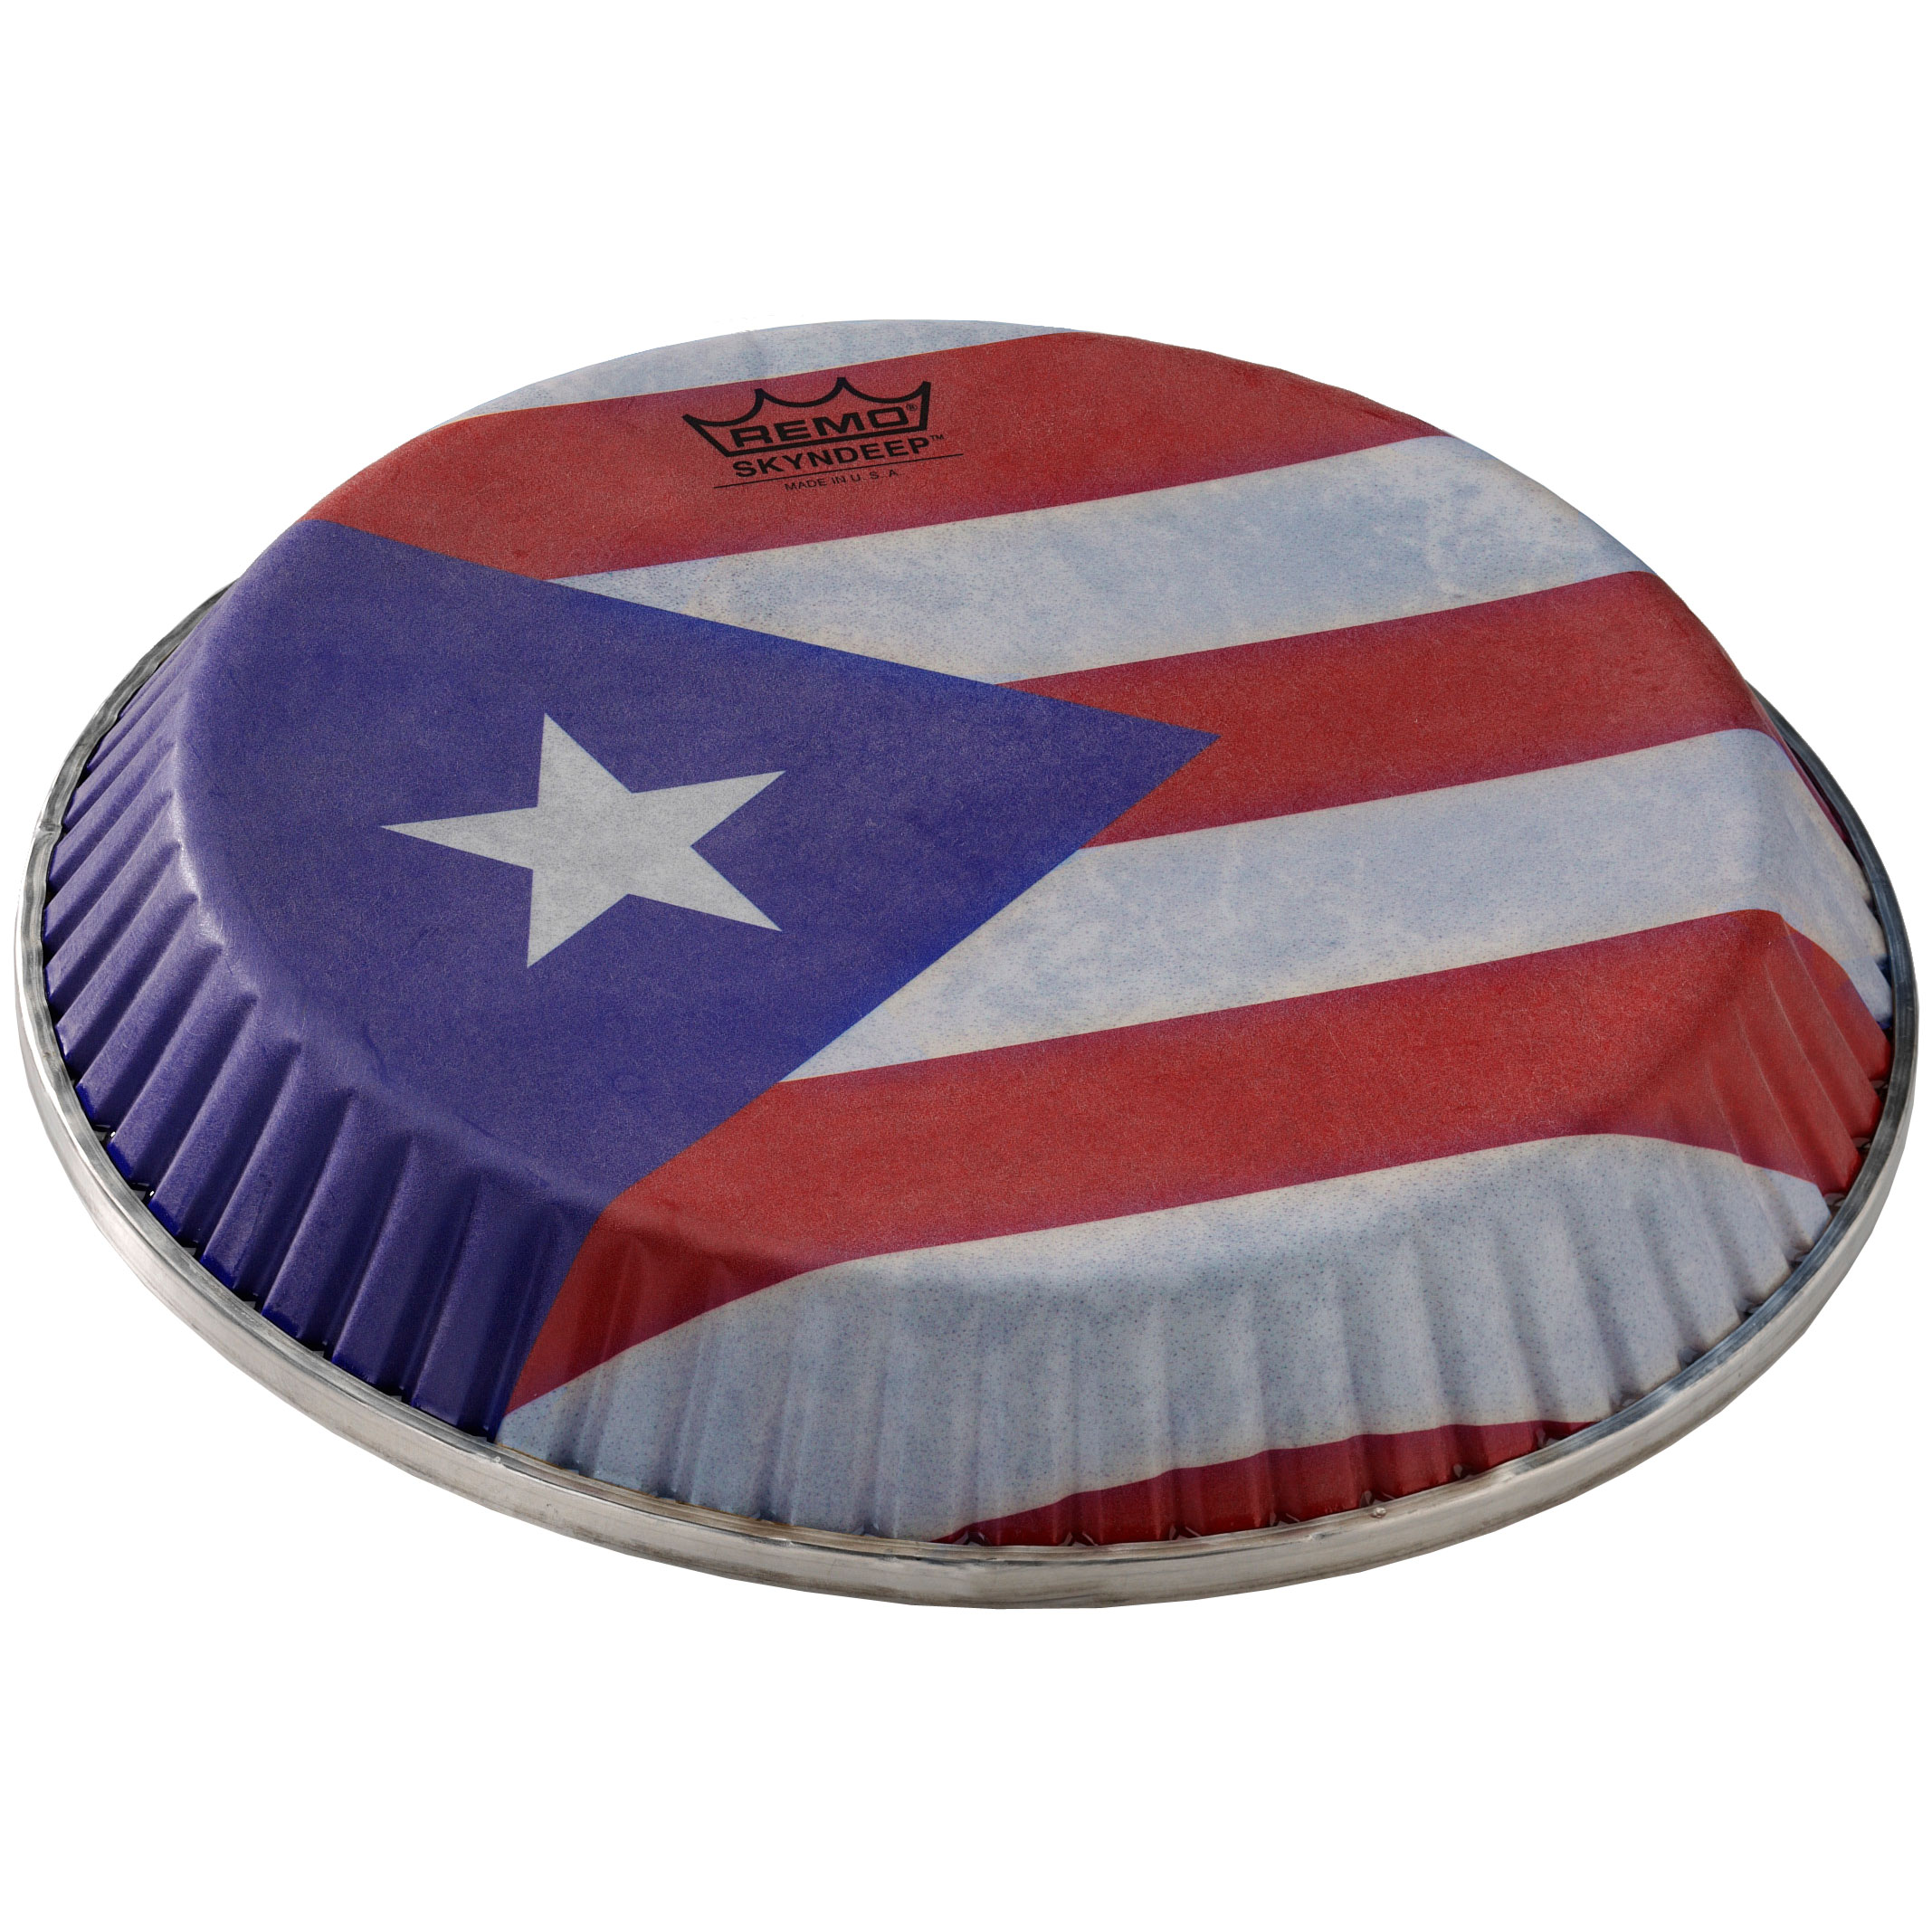 "Remo 9.75"" Symmetry Skyndeep Conga Drum Head (D3 Collar) with Puerto Rican Flag Graphic"